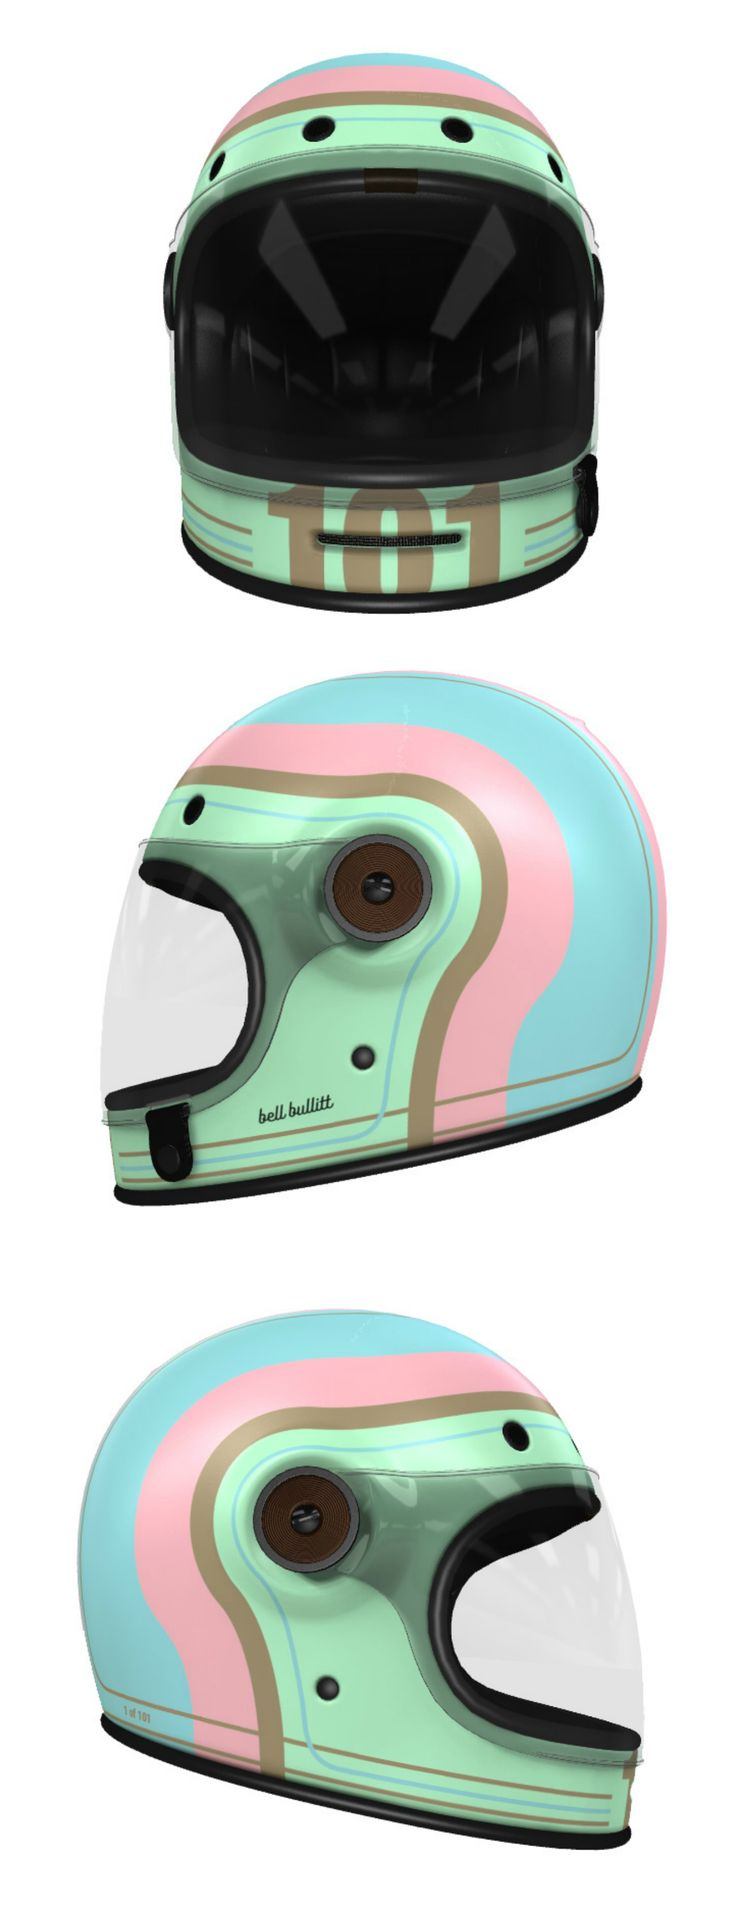 The smoothest way design and get custom paint on your new motorcycle helmet